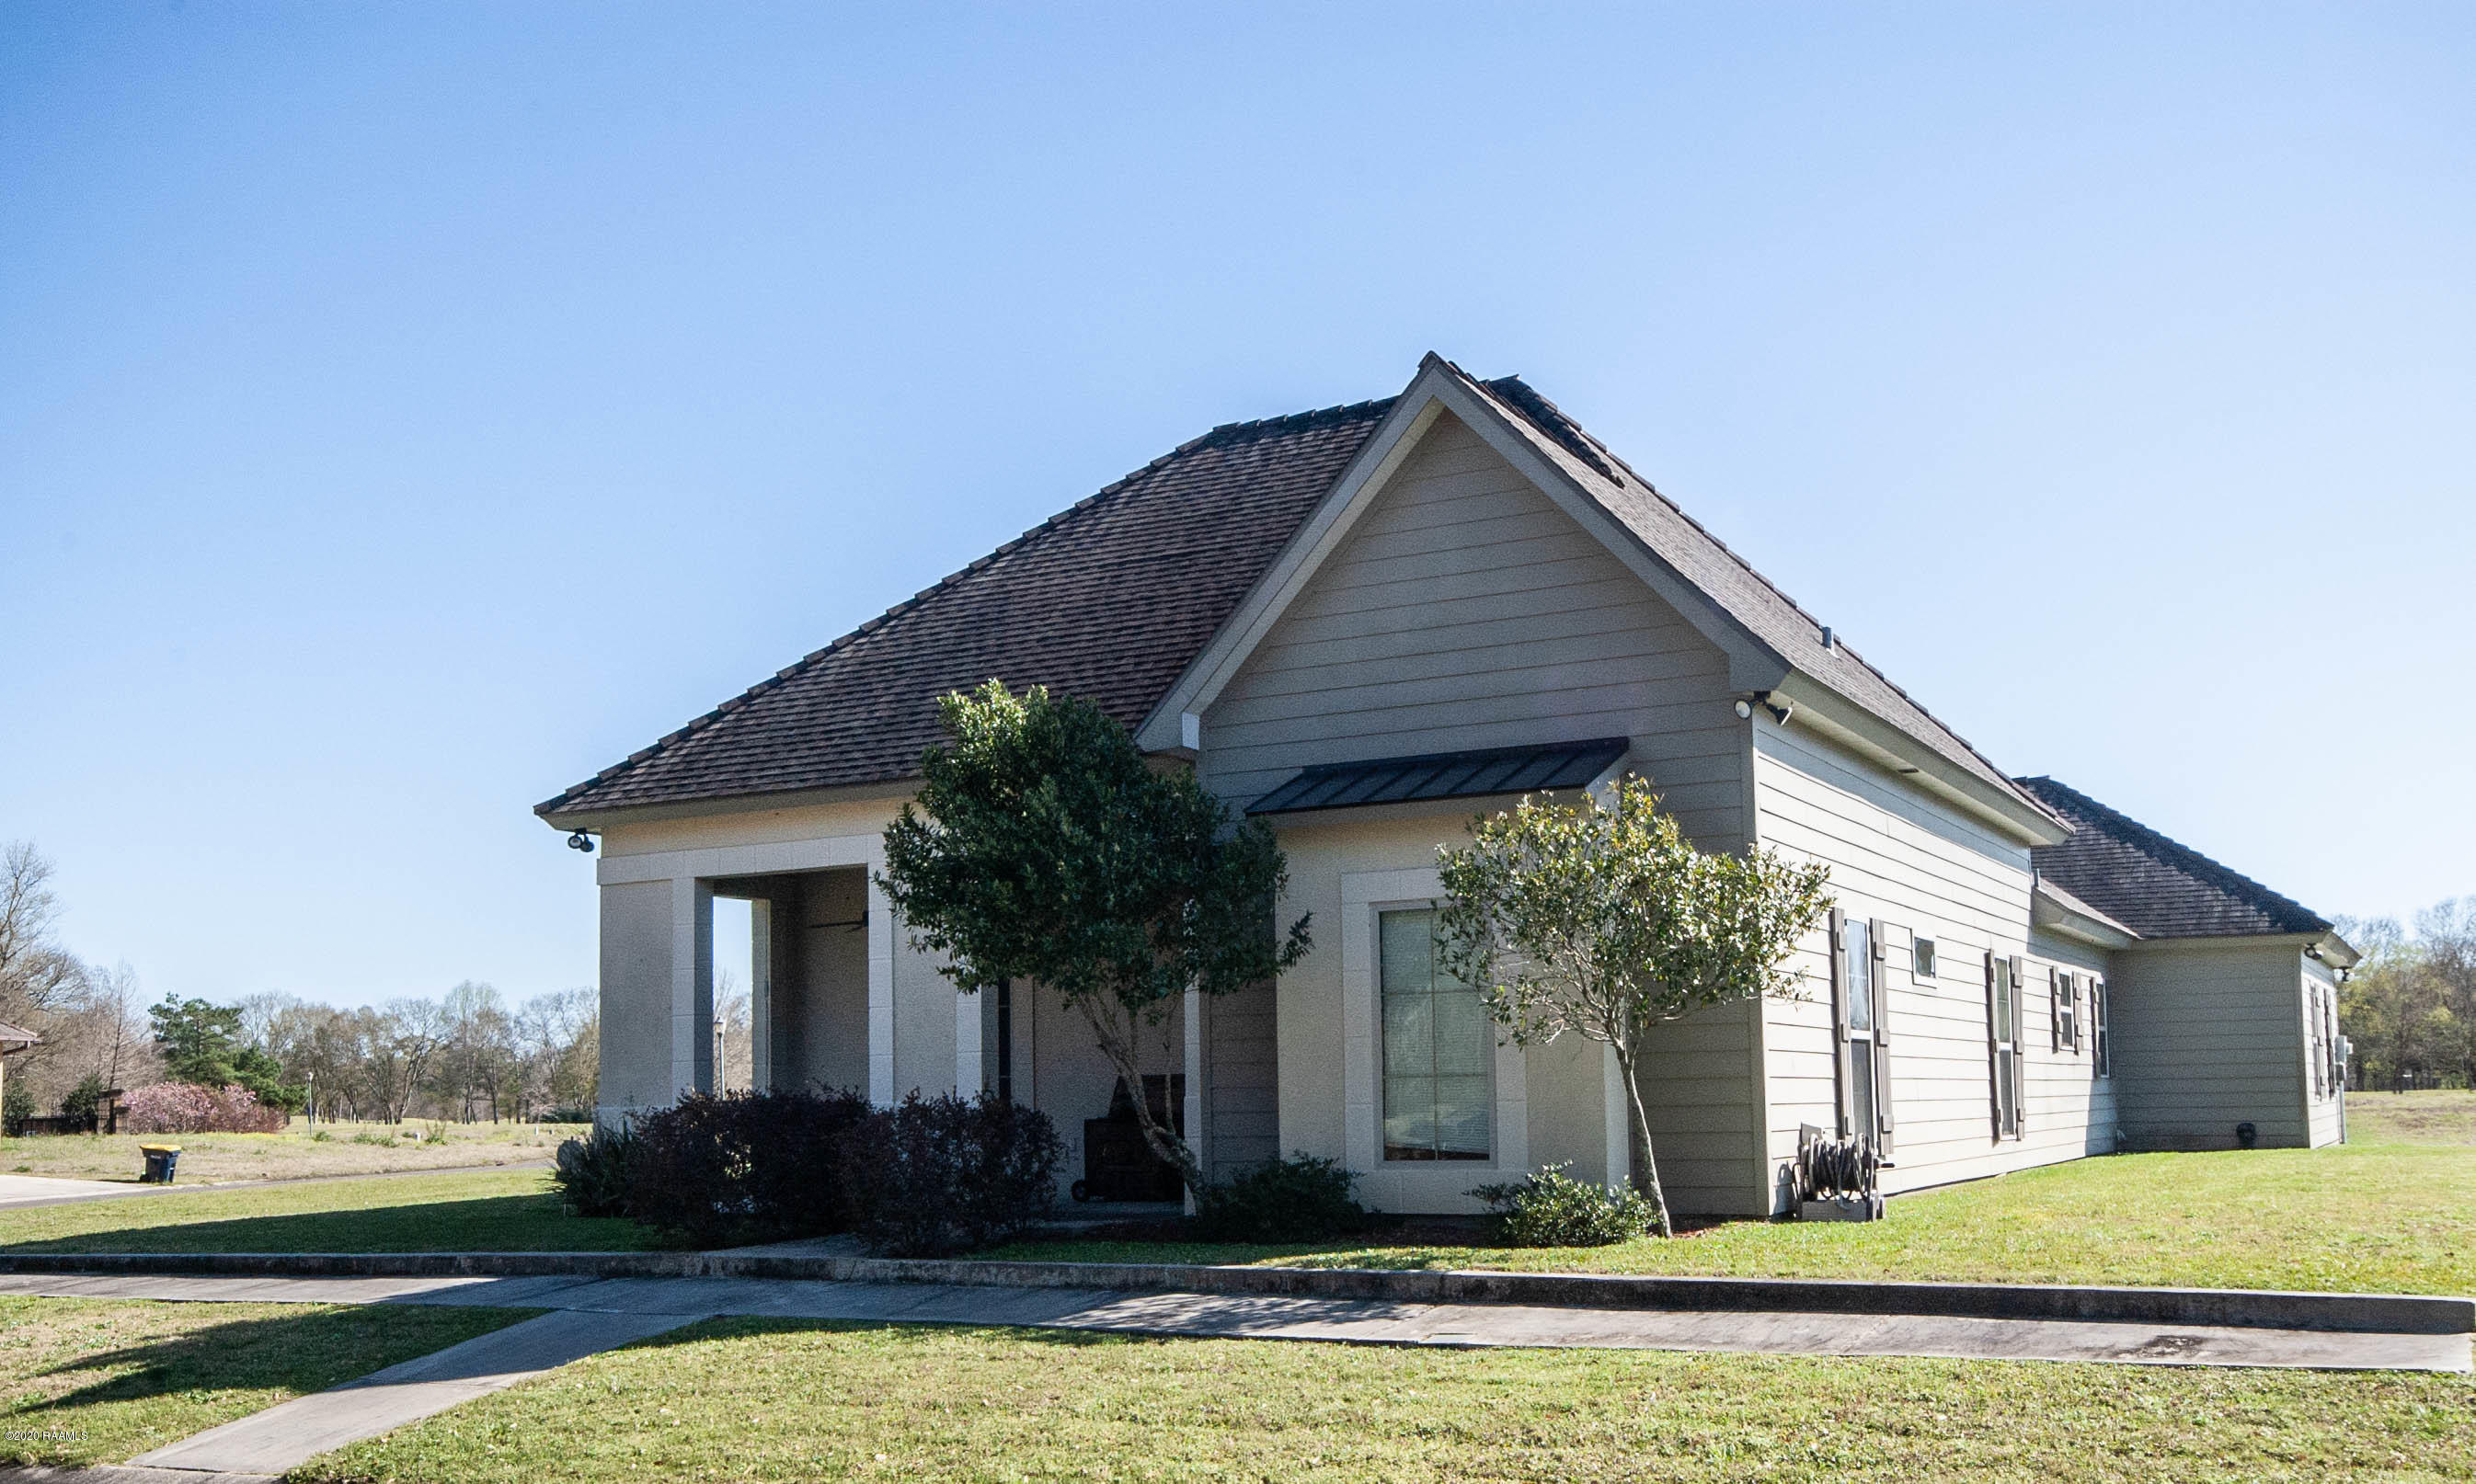 115 Wateredge Circle, Carencro, LA 70520 Photo #1